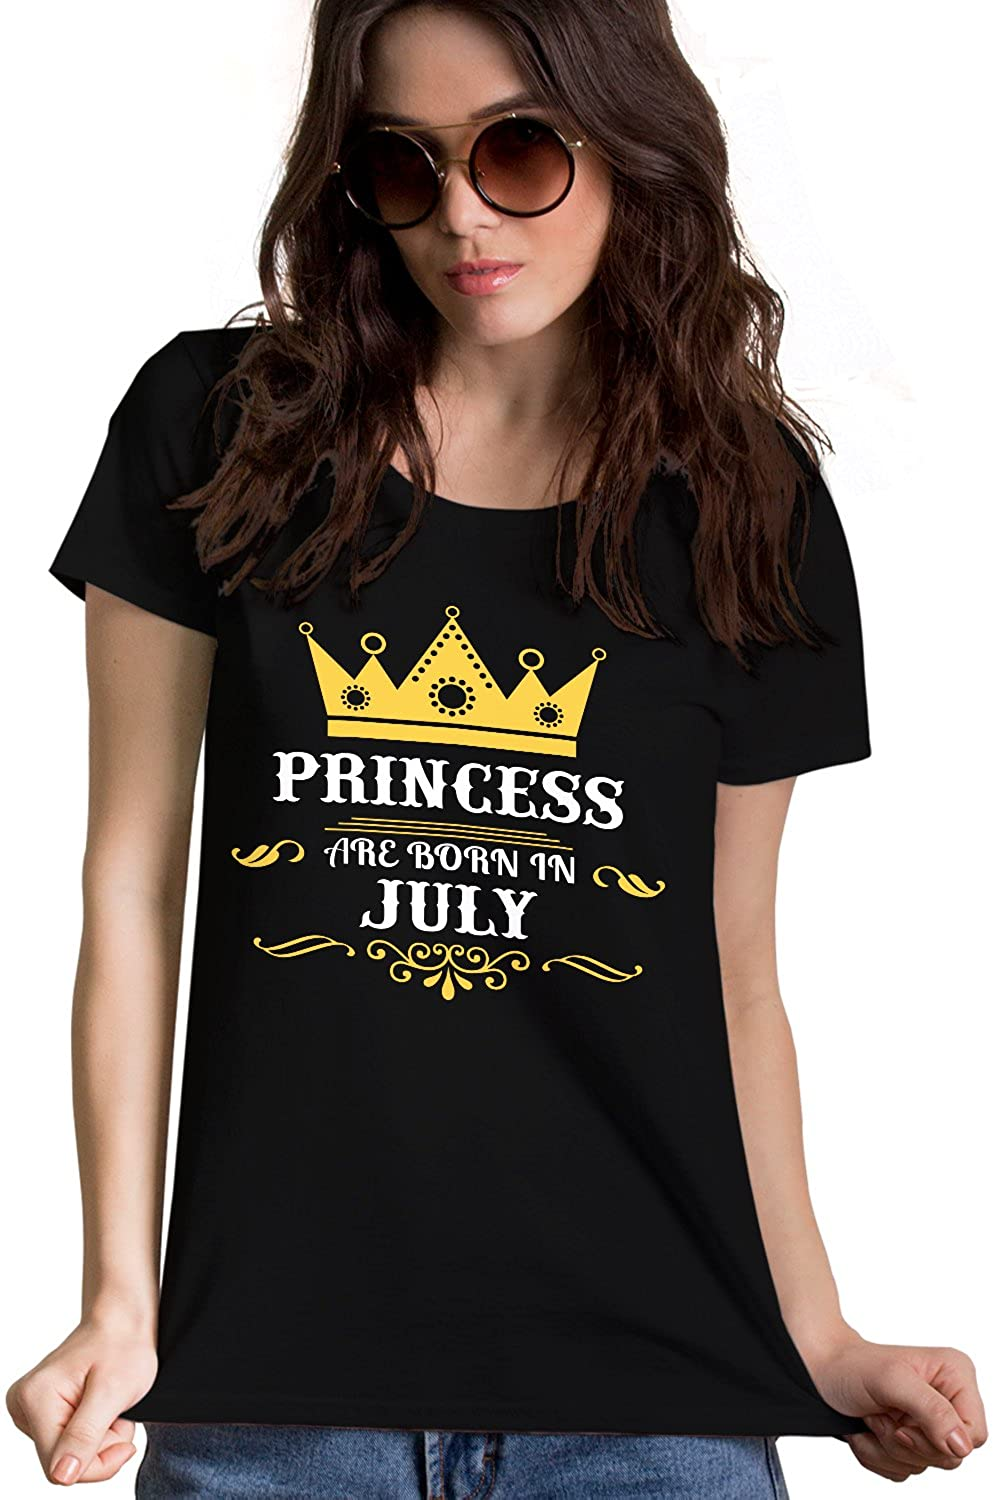 2134252b1 Princess Are Born In July Black T-Shirt with crown | Birthday Gift For  Women, Girls, Mother, Wife, Sister, Girlfriend, Her: Amazon.in: Clothing &  ...